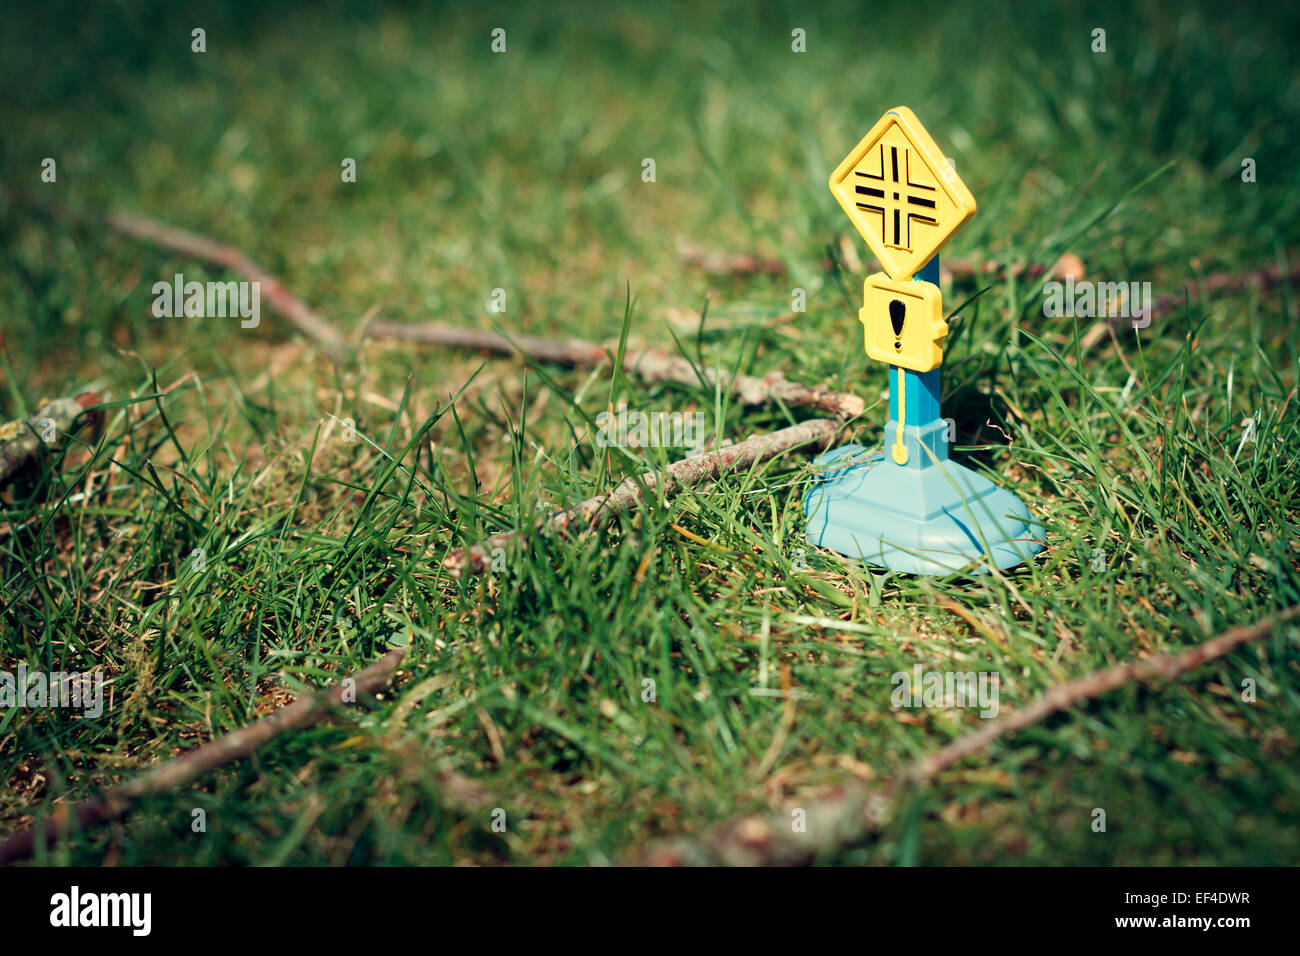 road sign toy grass macro photography - Stock Image